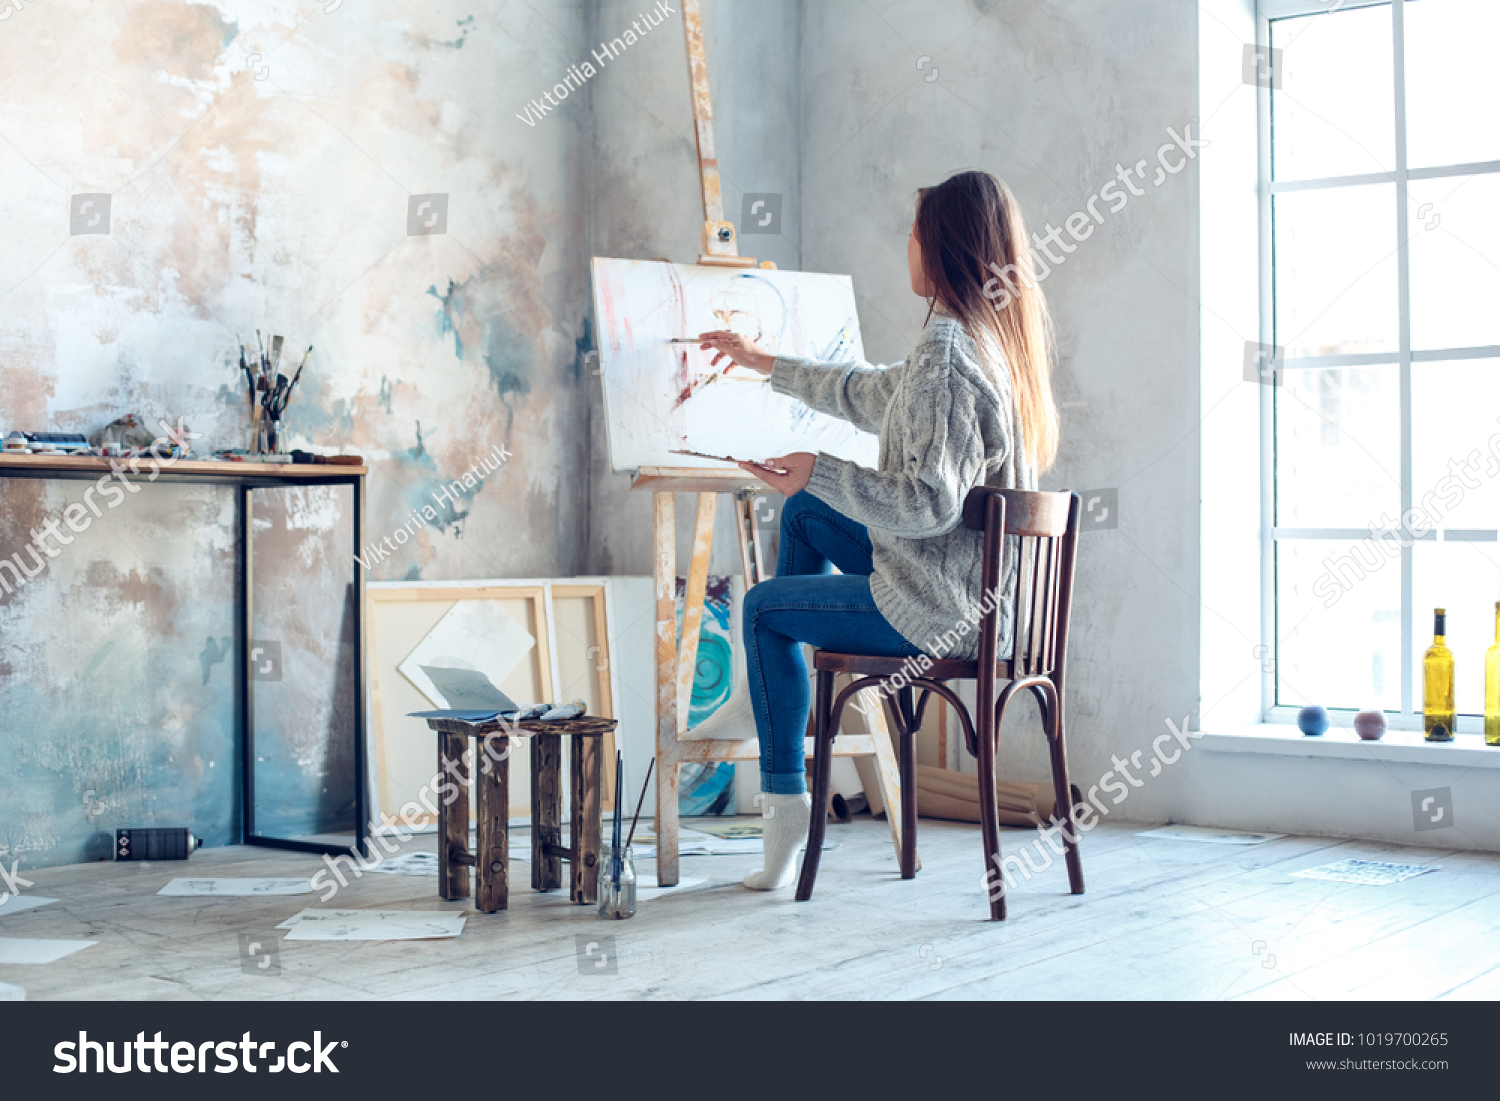 Young woman artist painting at home creative painting back view #1019700265